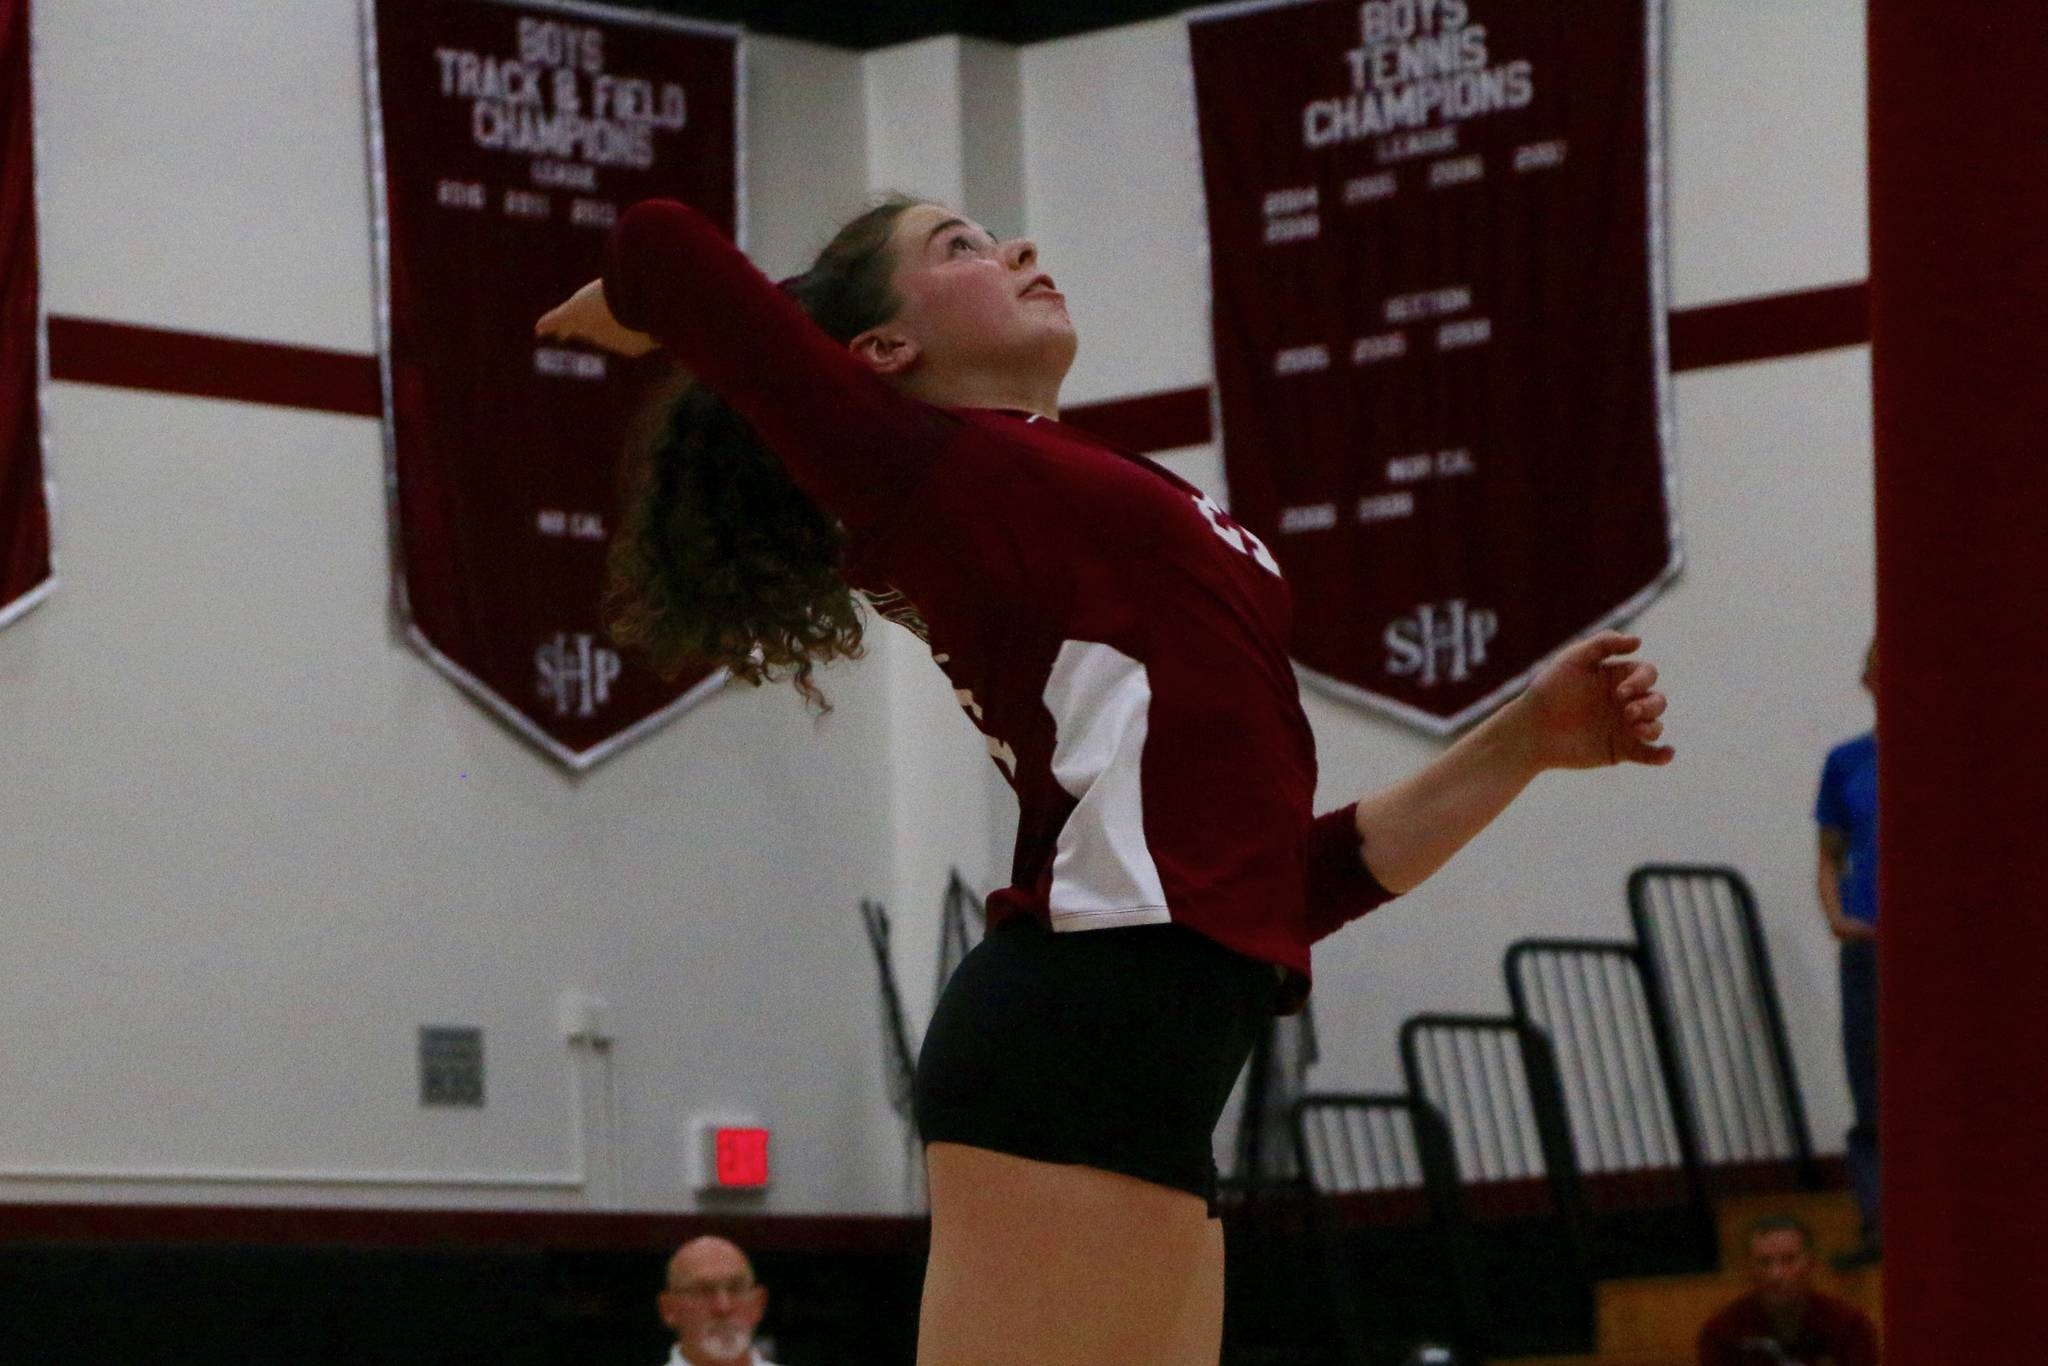 Lowell junior middle blocker Kenedi Edmunds goes up for a kill attempt during Lowell's CIF Division III NorCal regional final against Sacred Heart Prep in Atherton, Calif. on Nov. 19, 2019. (Ryan Gorcey / S.F. Examiner)